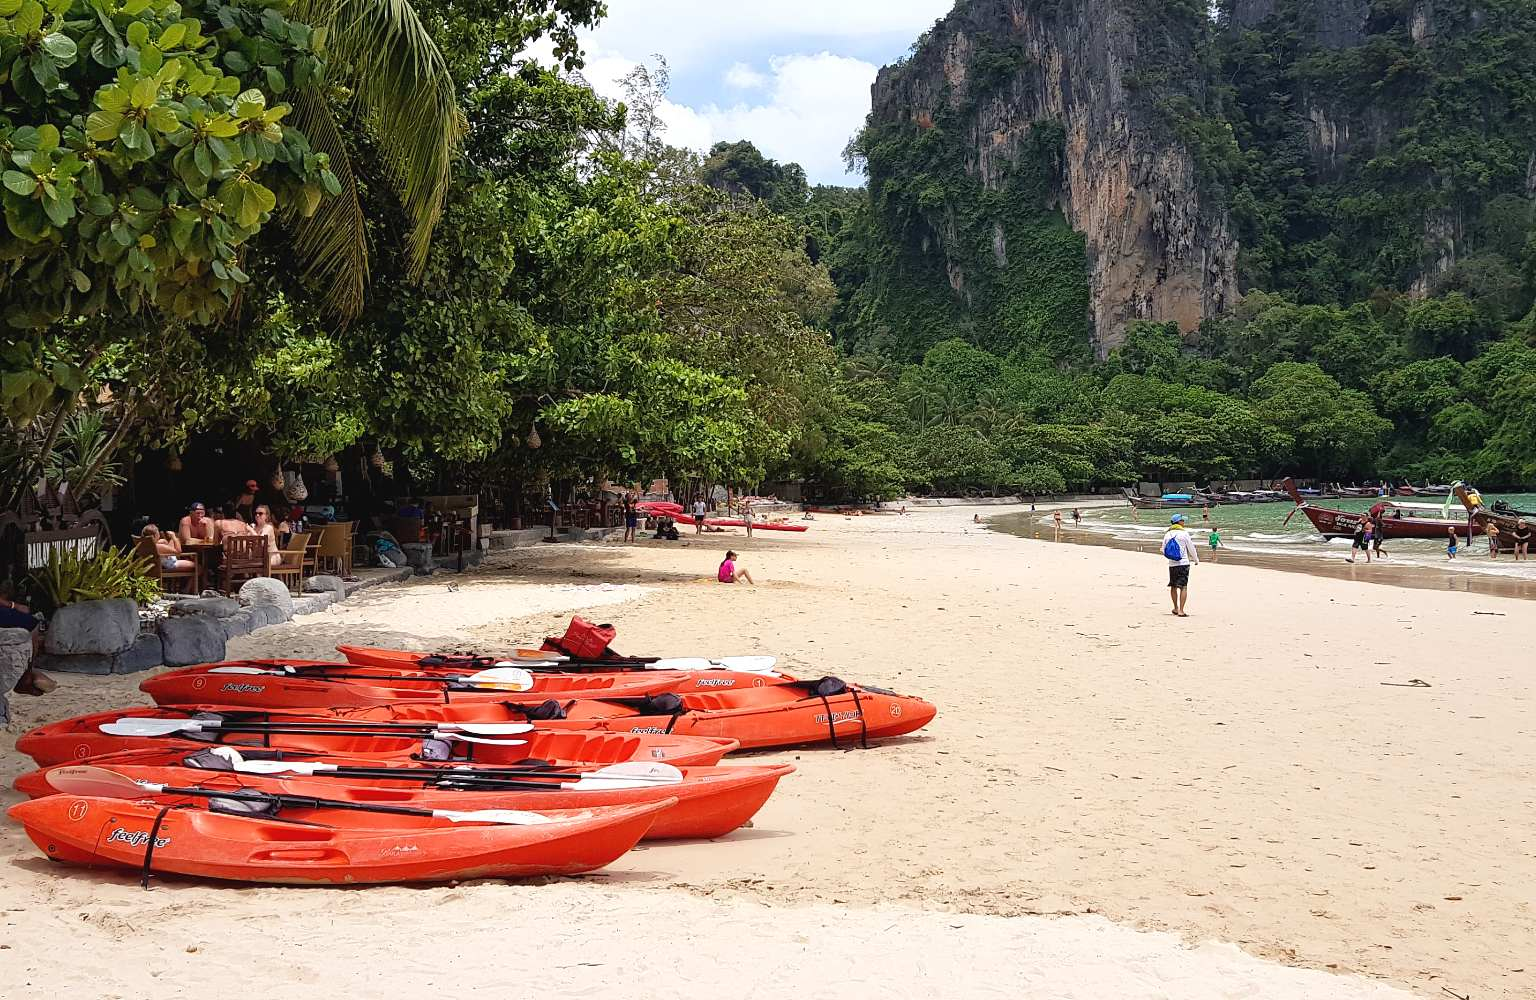 Kayaks on the beach of Railay West, Krabi